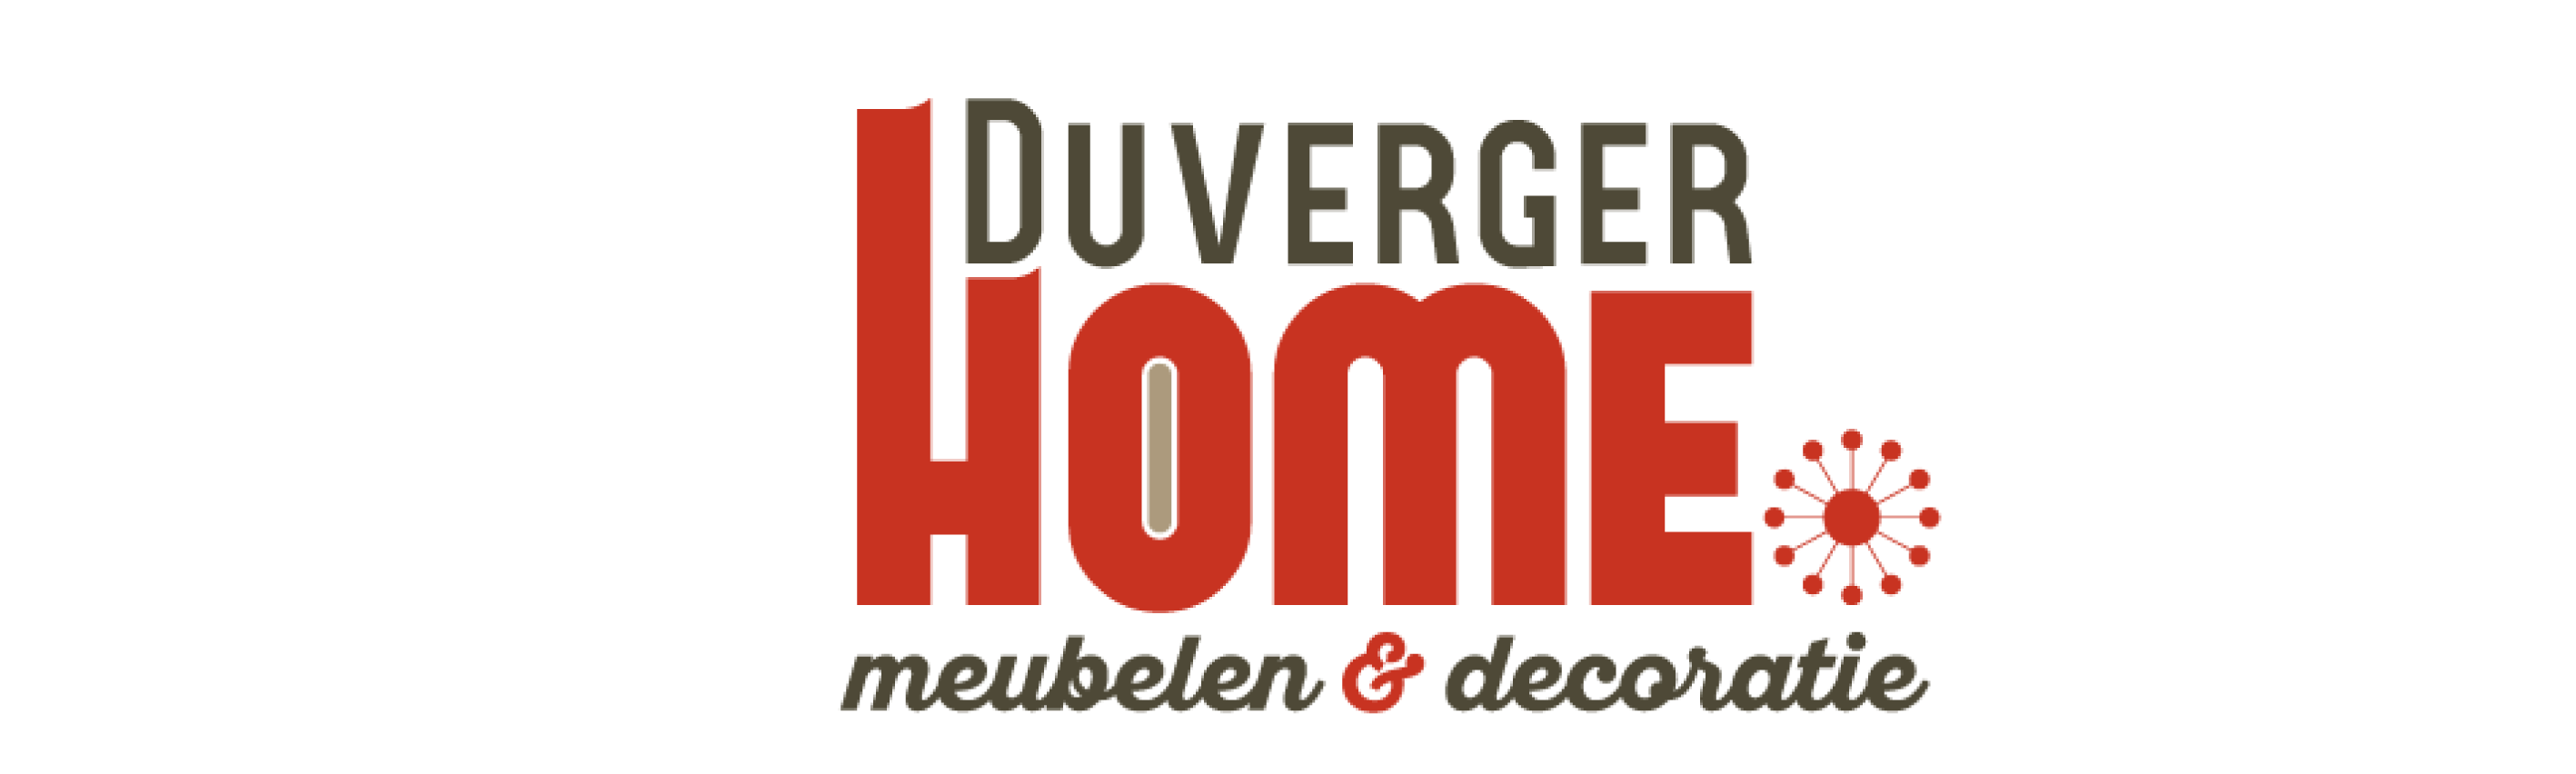 Duverger Home